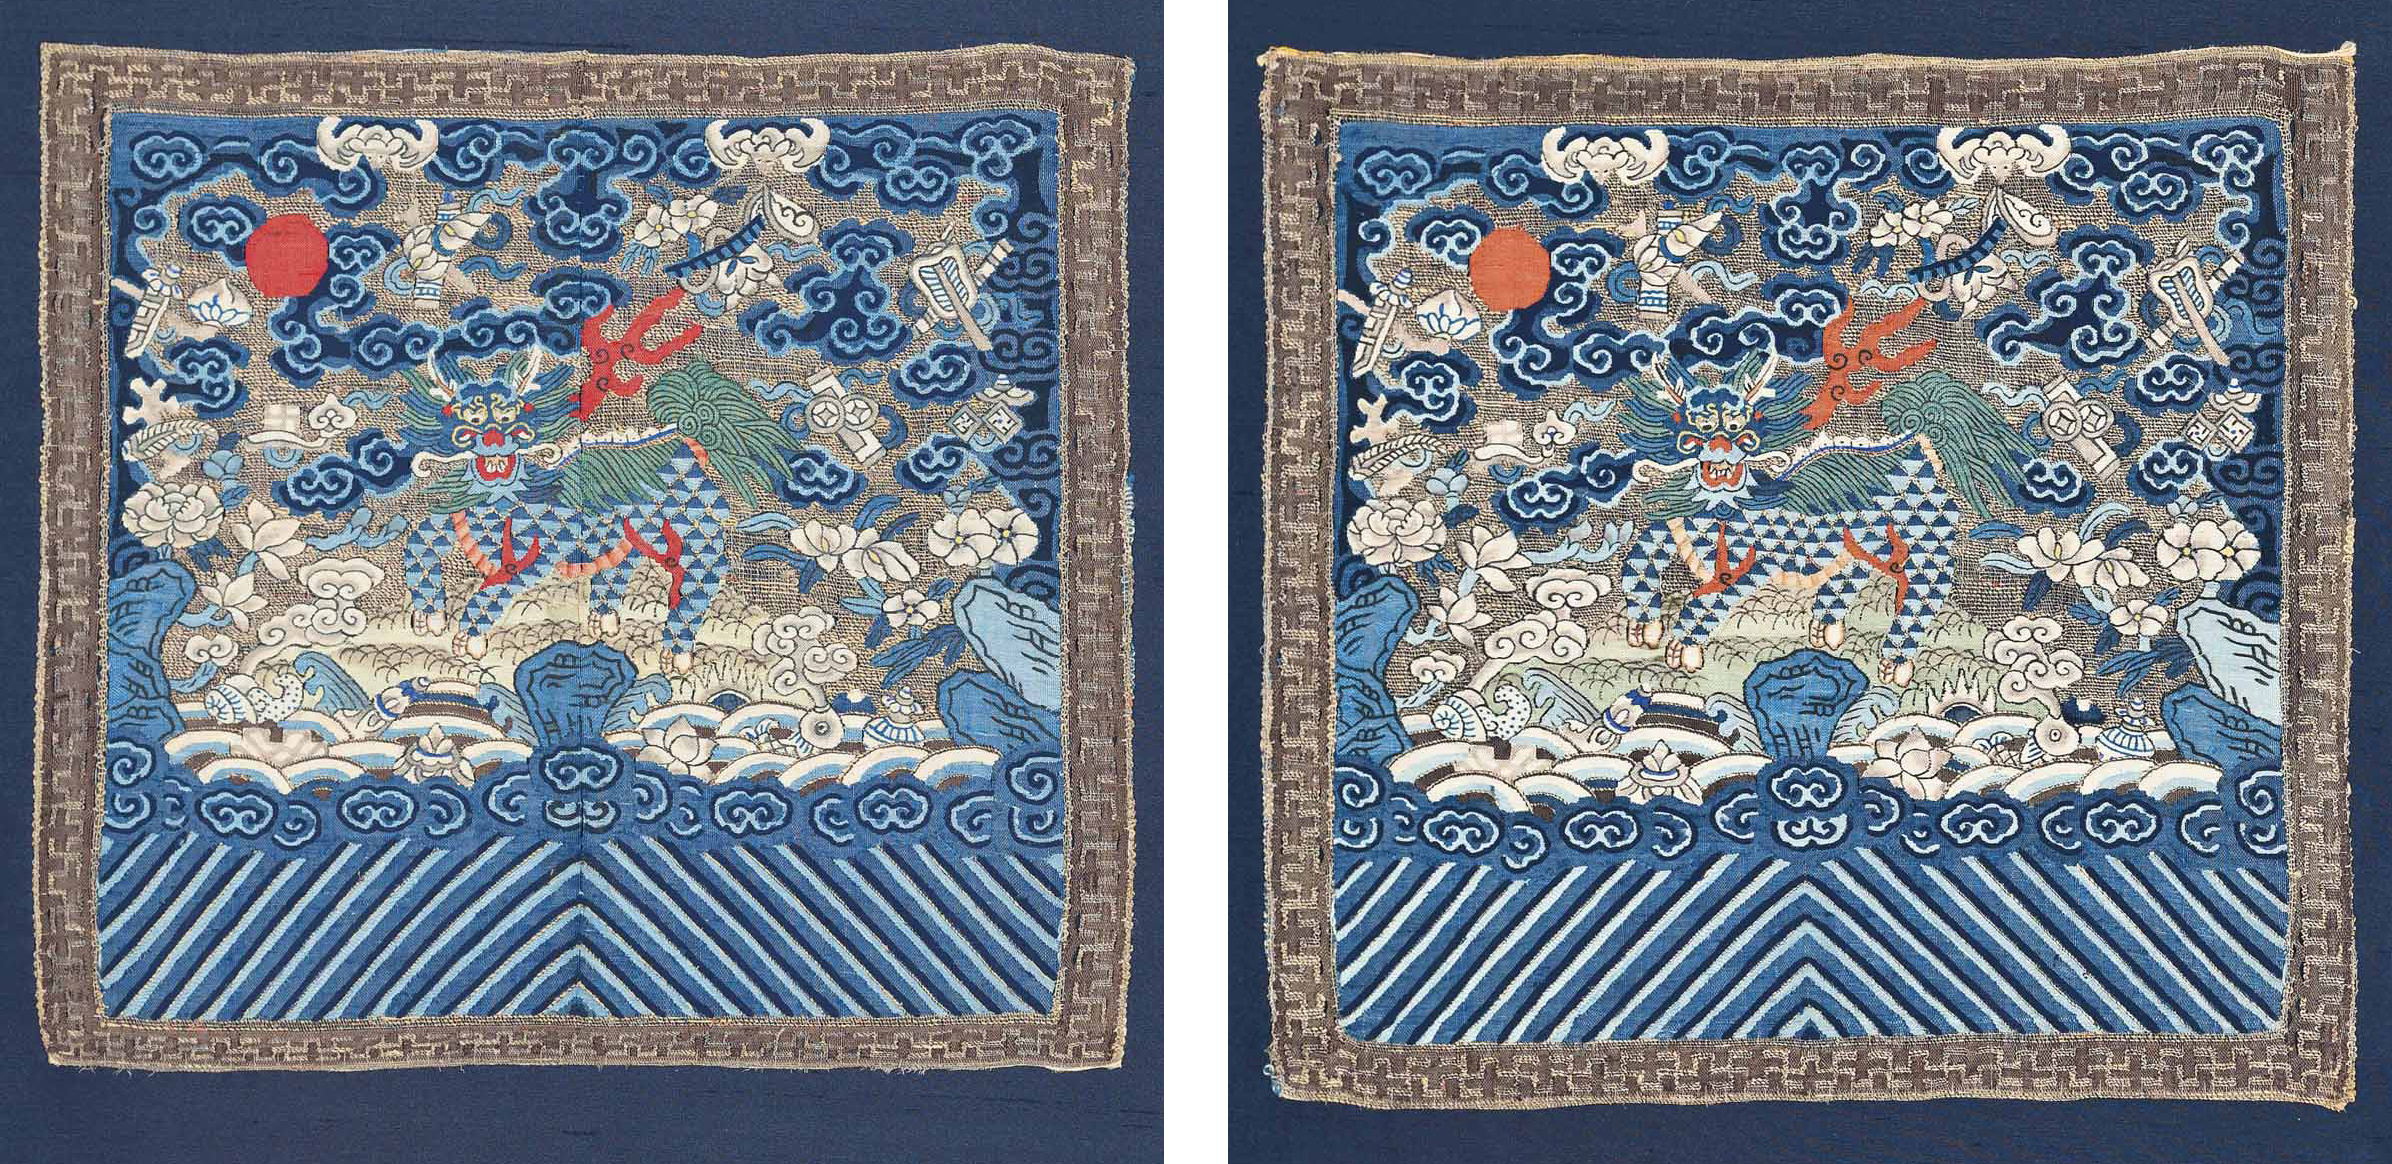 Pair of late 19th century Qing dynasty  qi lin  badges(1st military rank), on auction through Christie's.